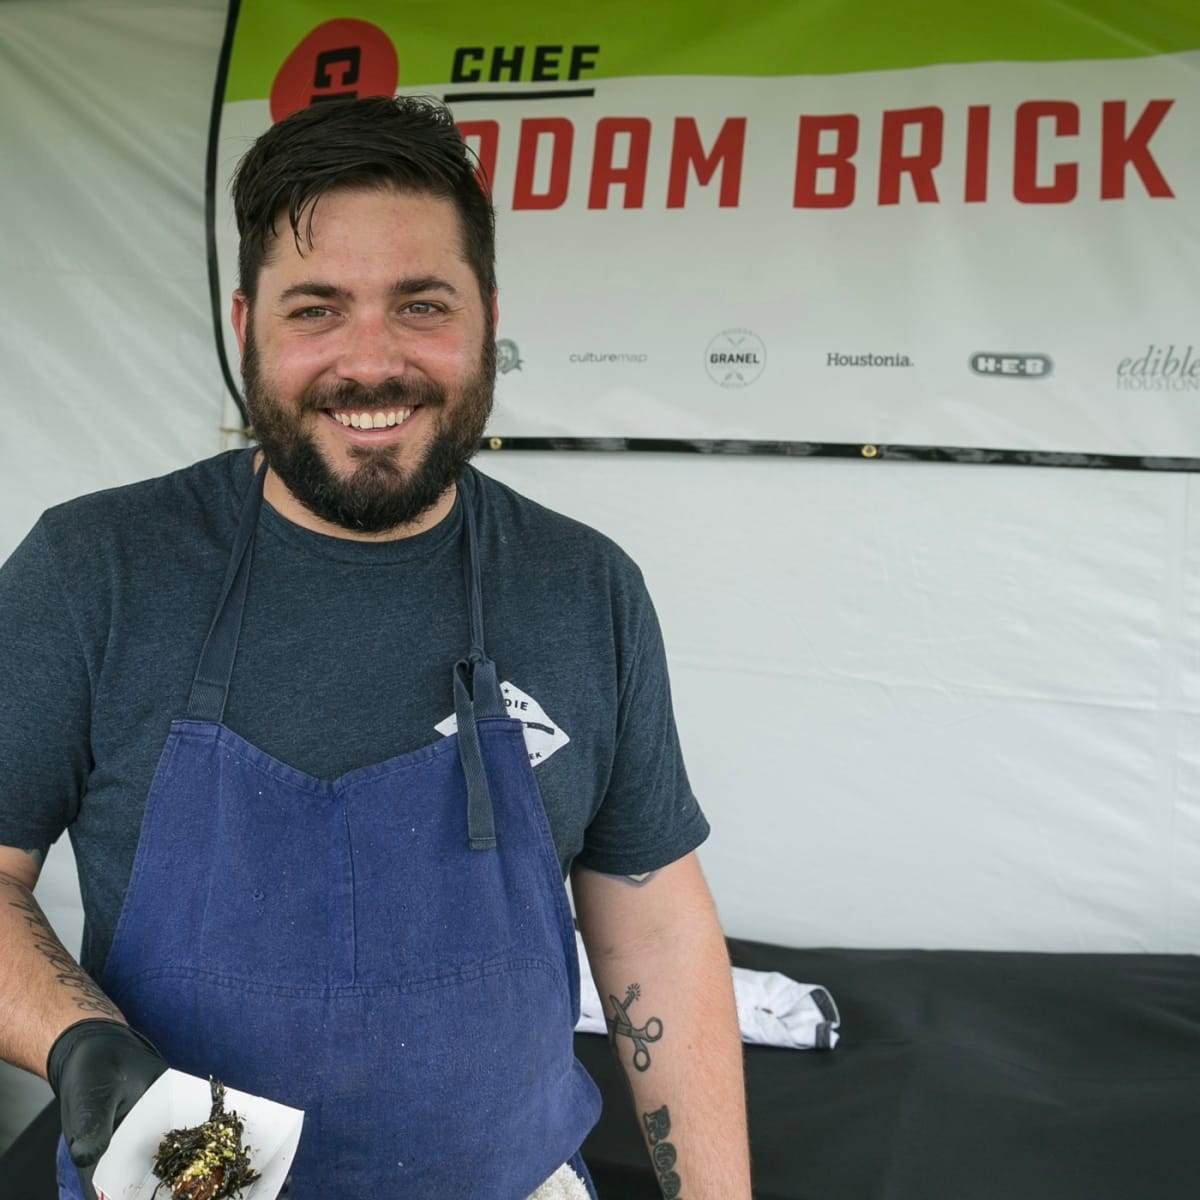 Adam Brick Chef Fest 2018